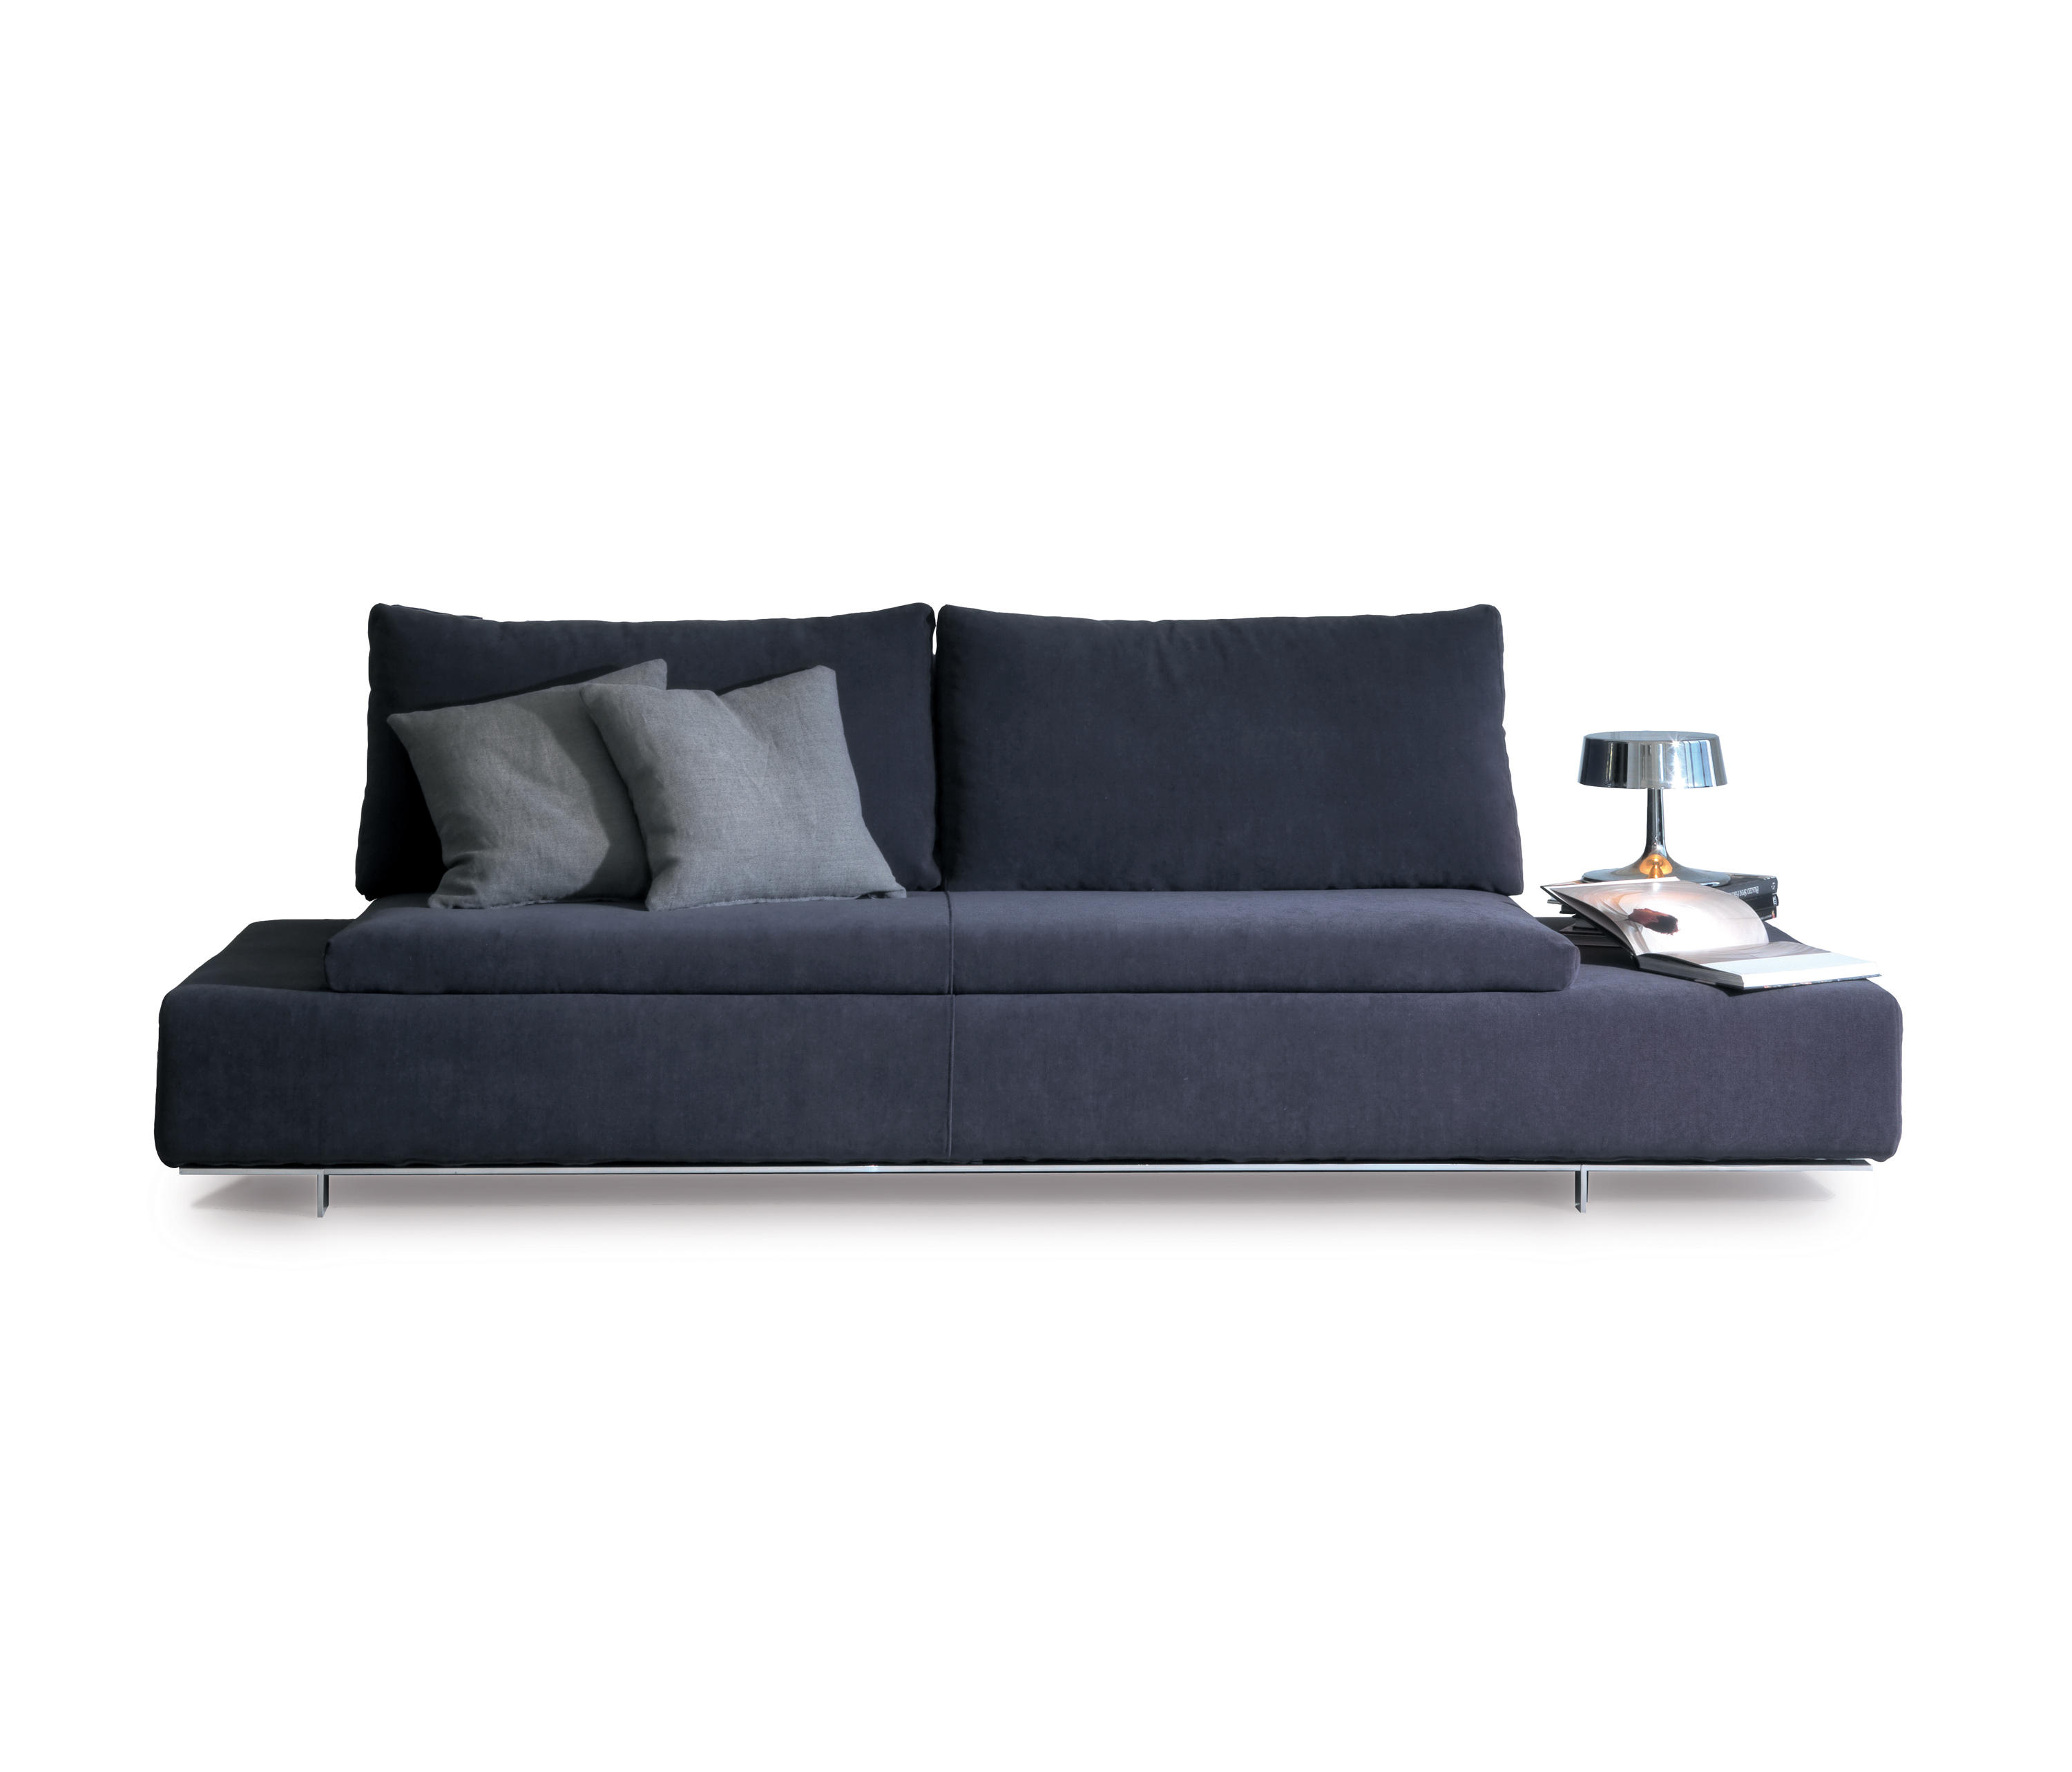 Sconto Couch Beautiful Sofas Im Angebot Beschenken With Sconto